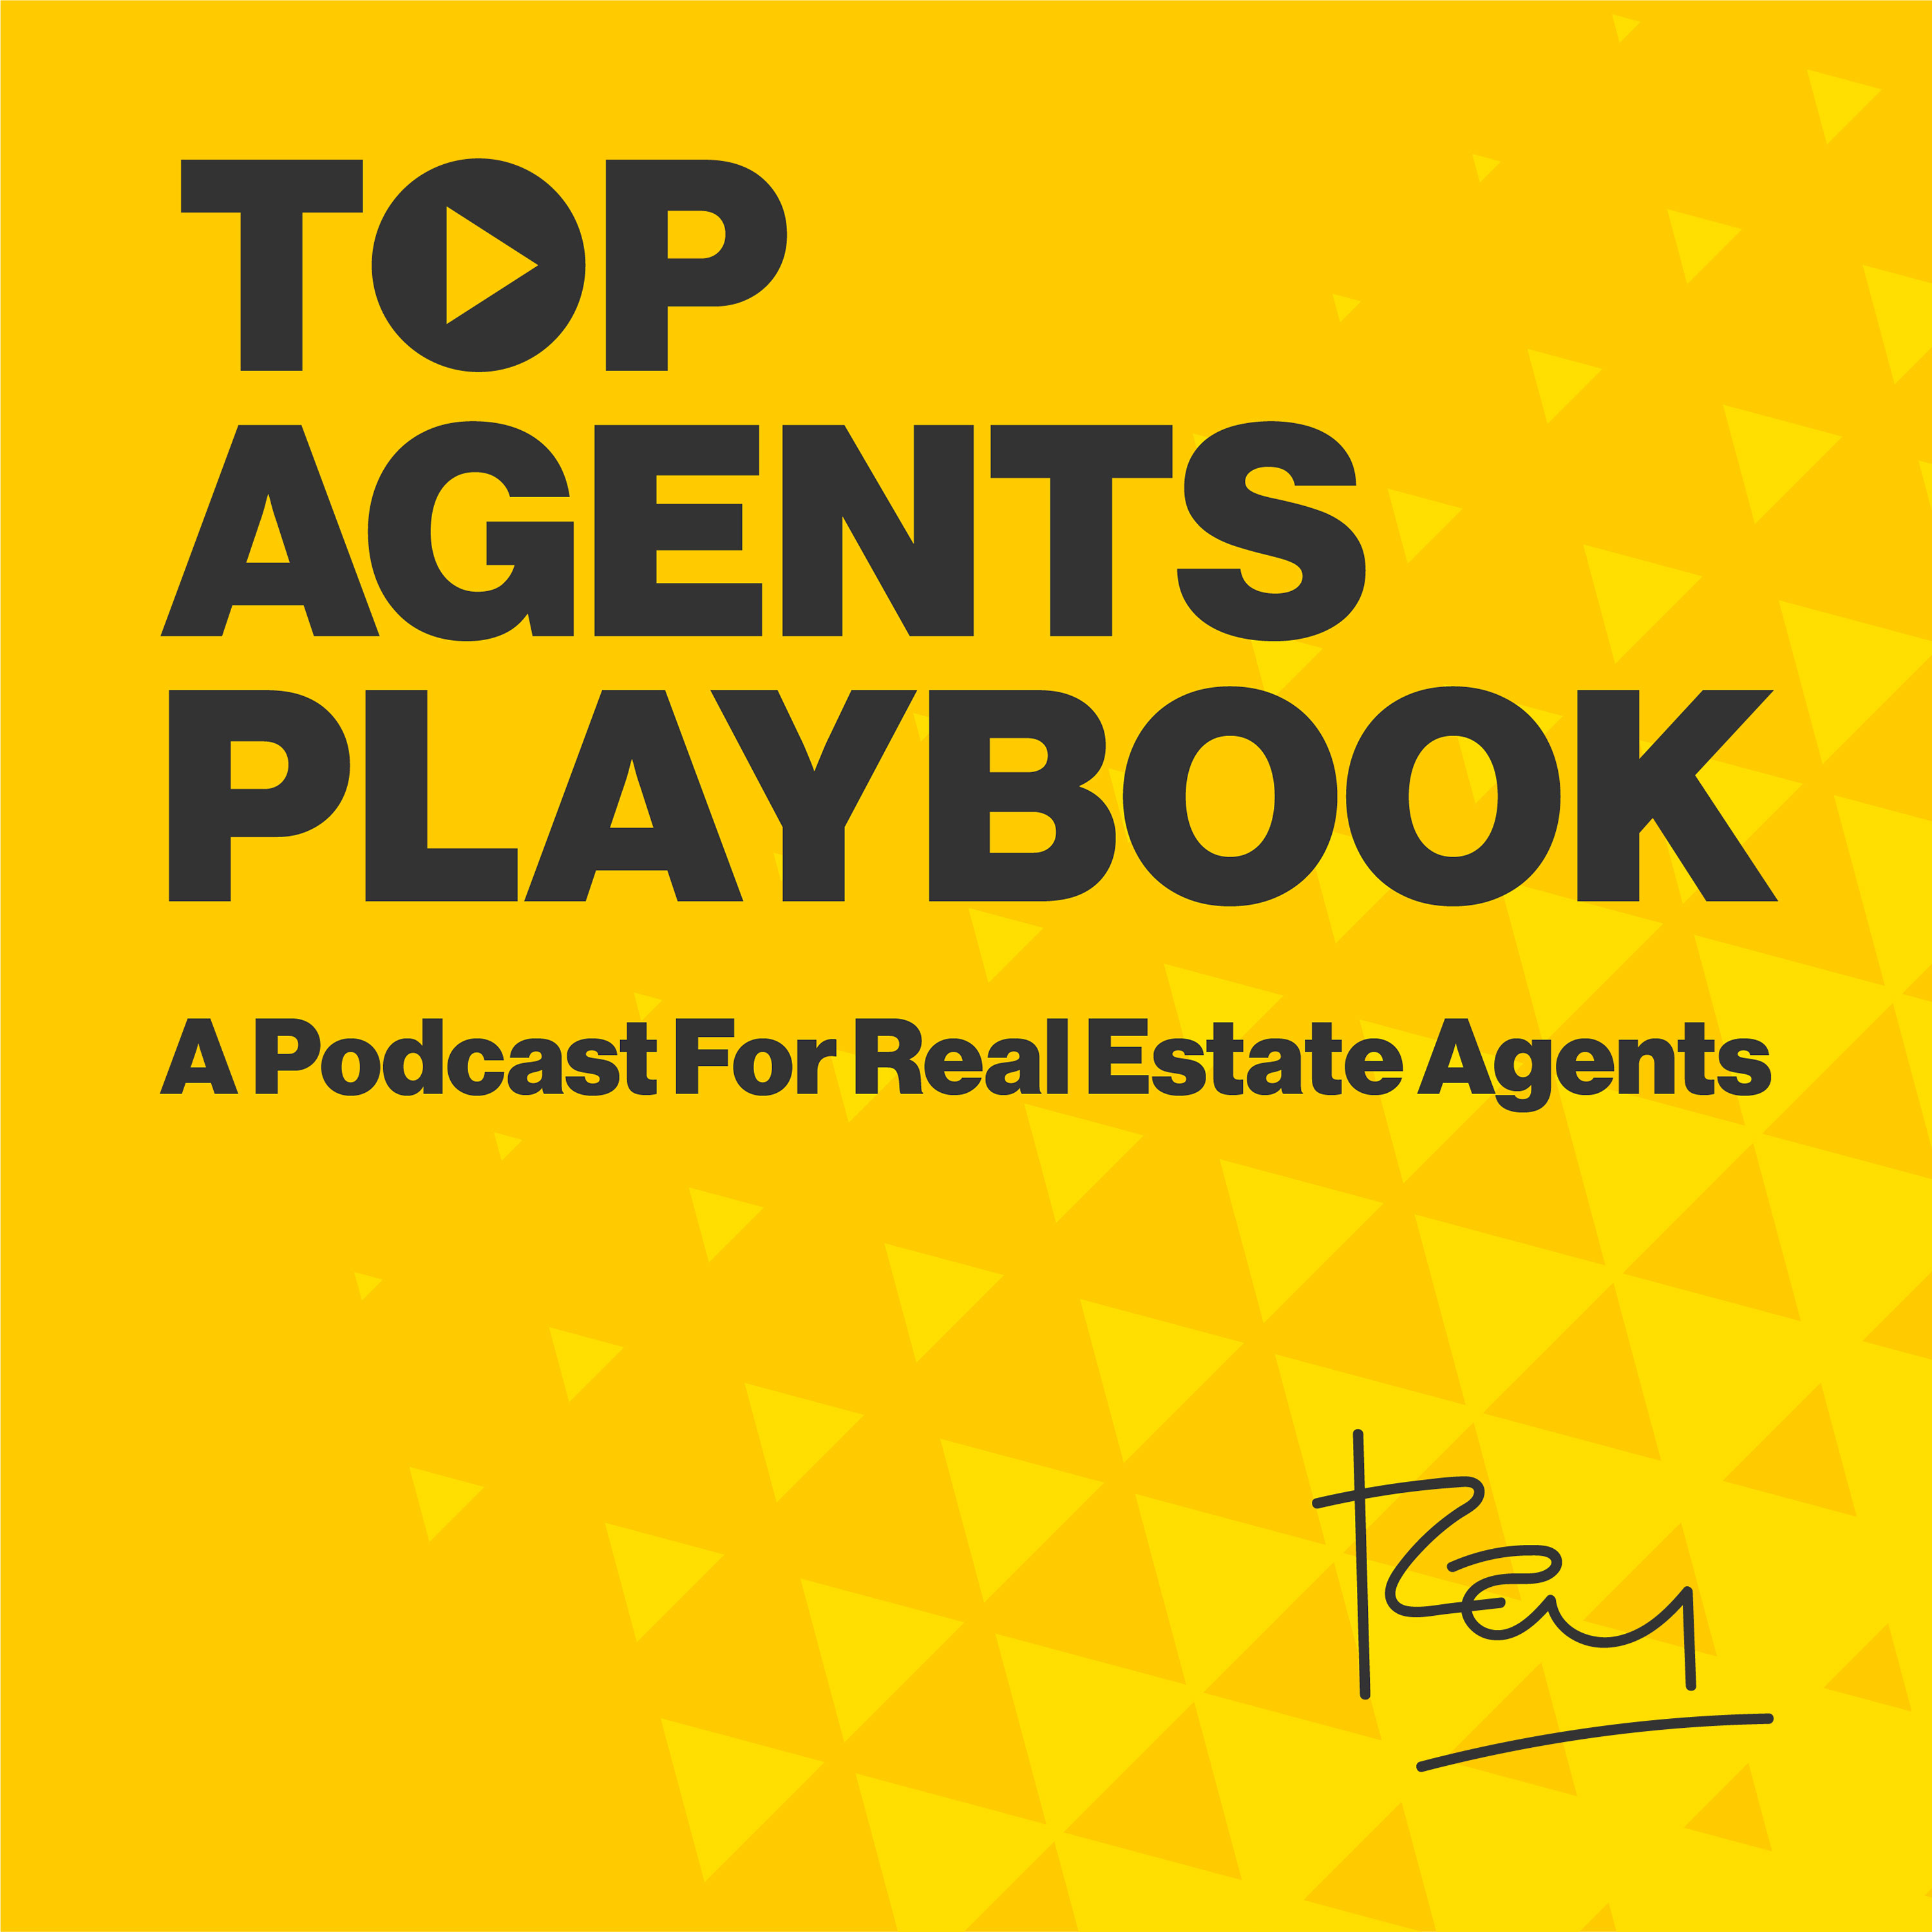 Artwork for podcast Top Agents Playbook